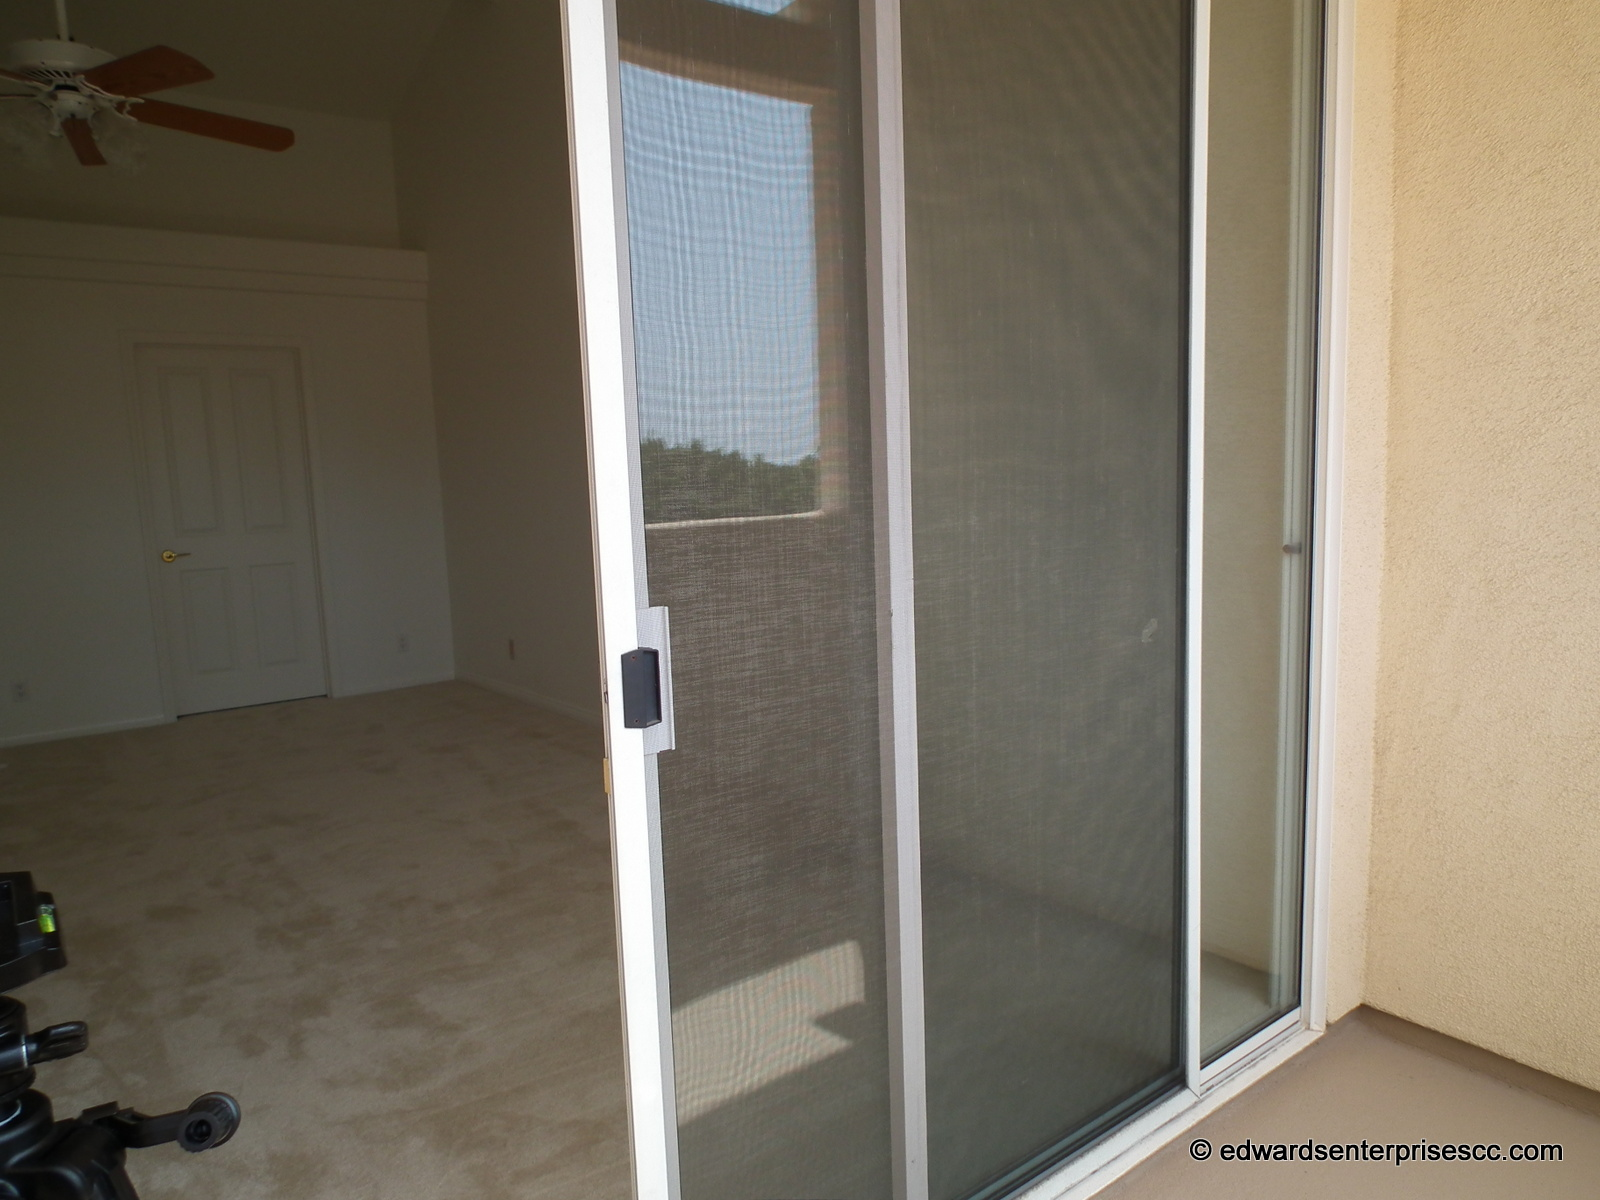 Sliding glass door & screen repairs & installs in Oxnard.